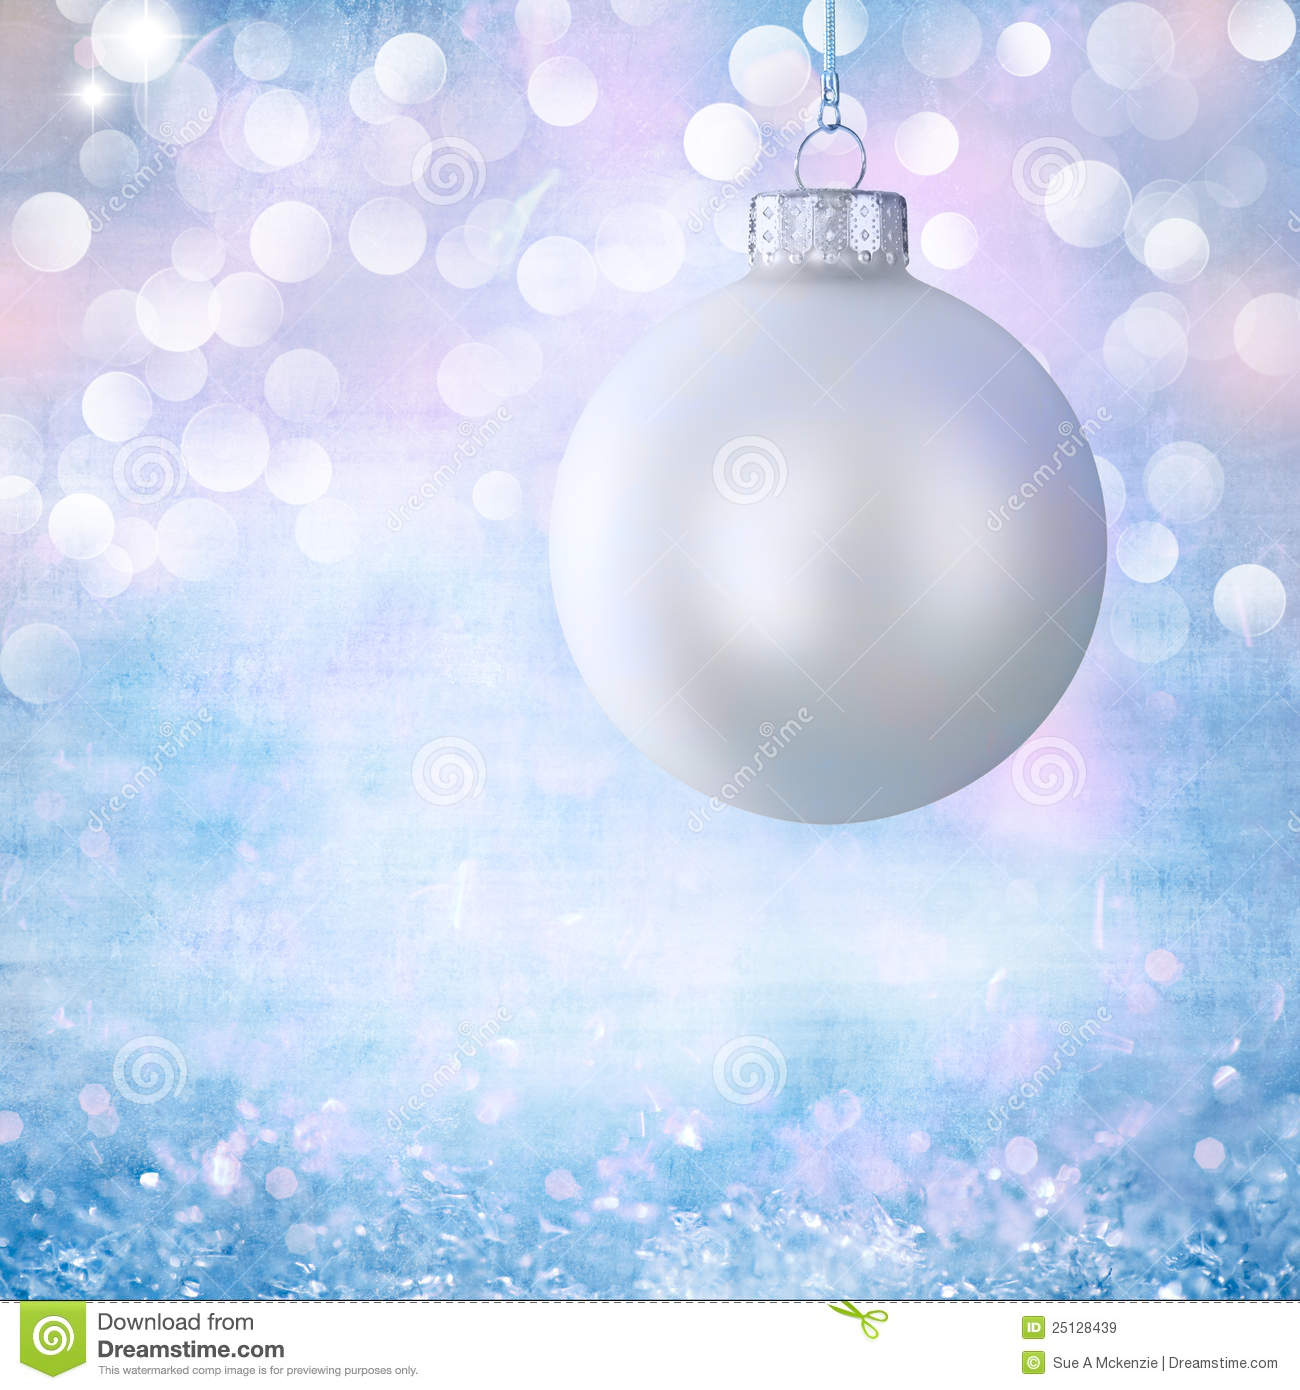 Vintage White Christmas Ball Ornament Over Grunge Royalty Free ...